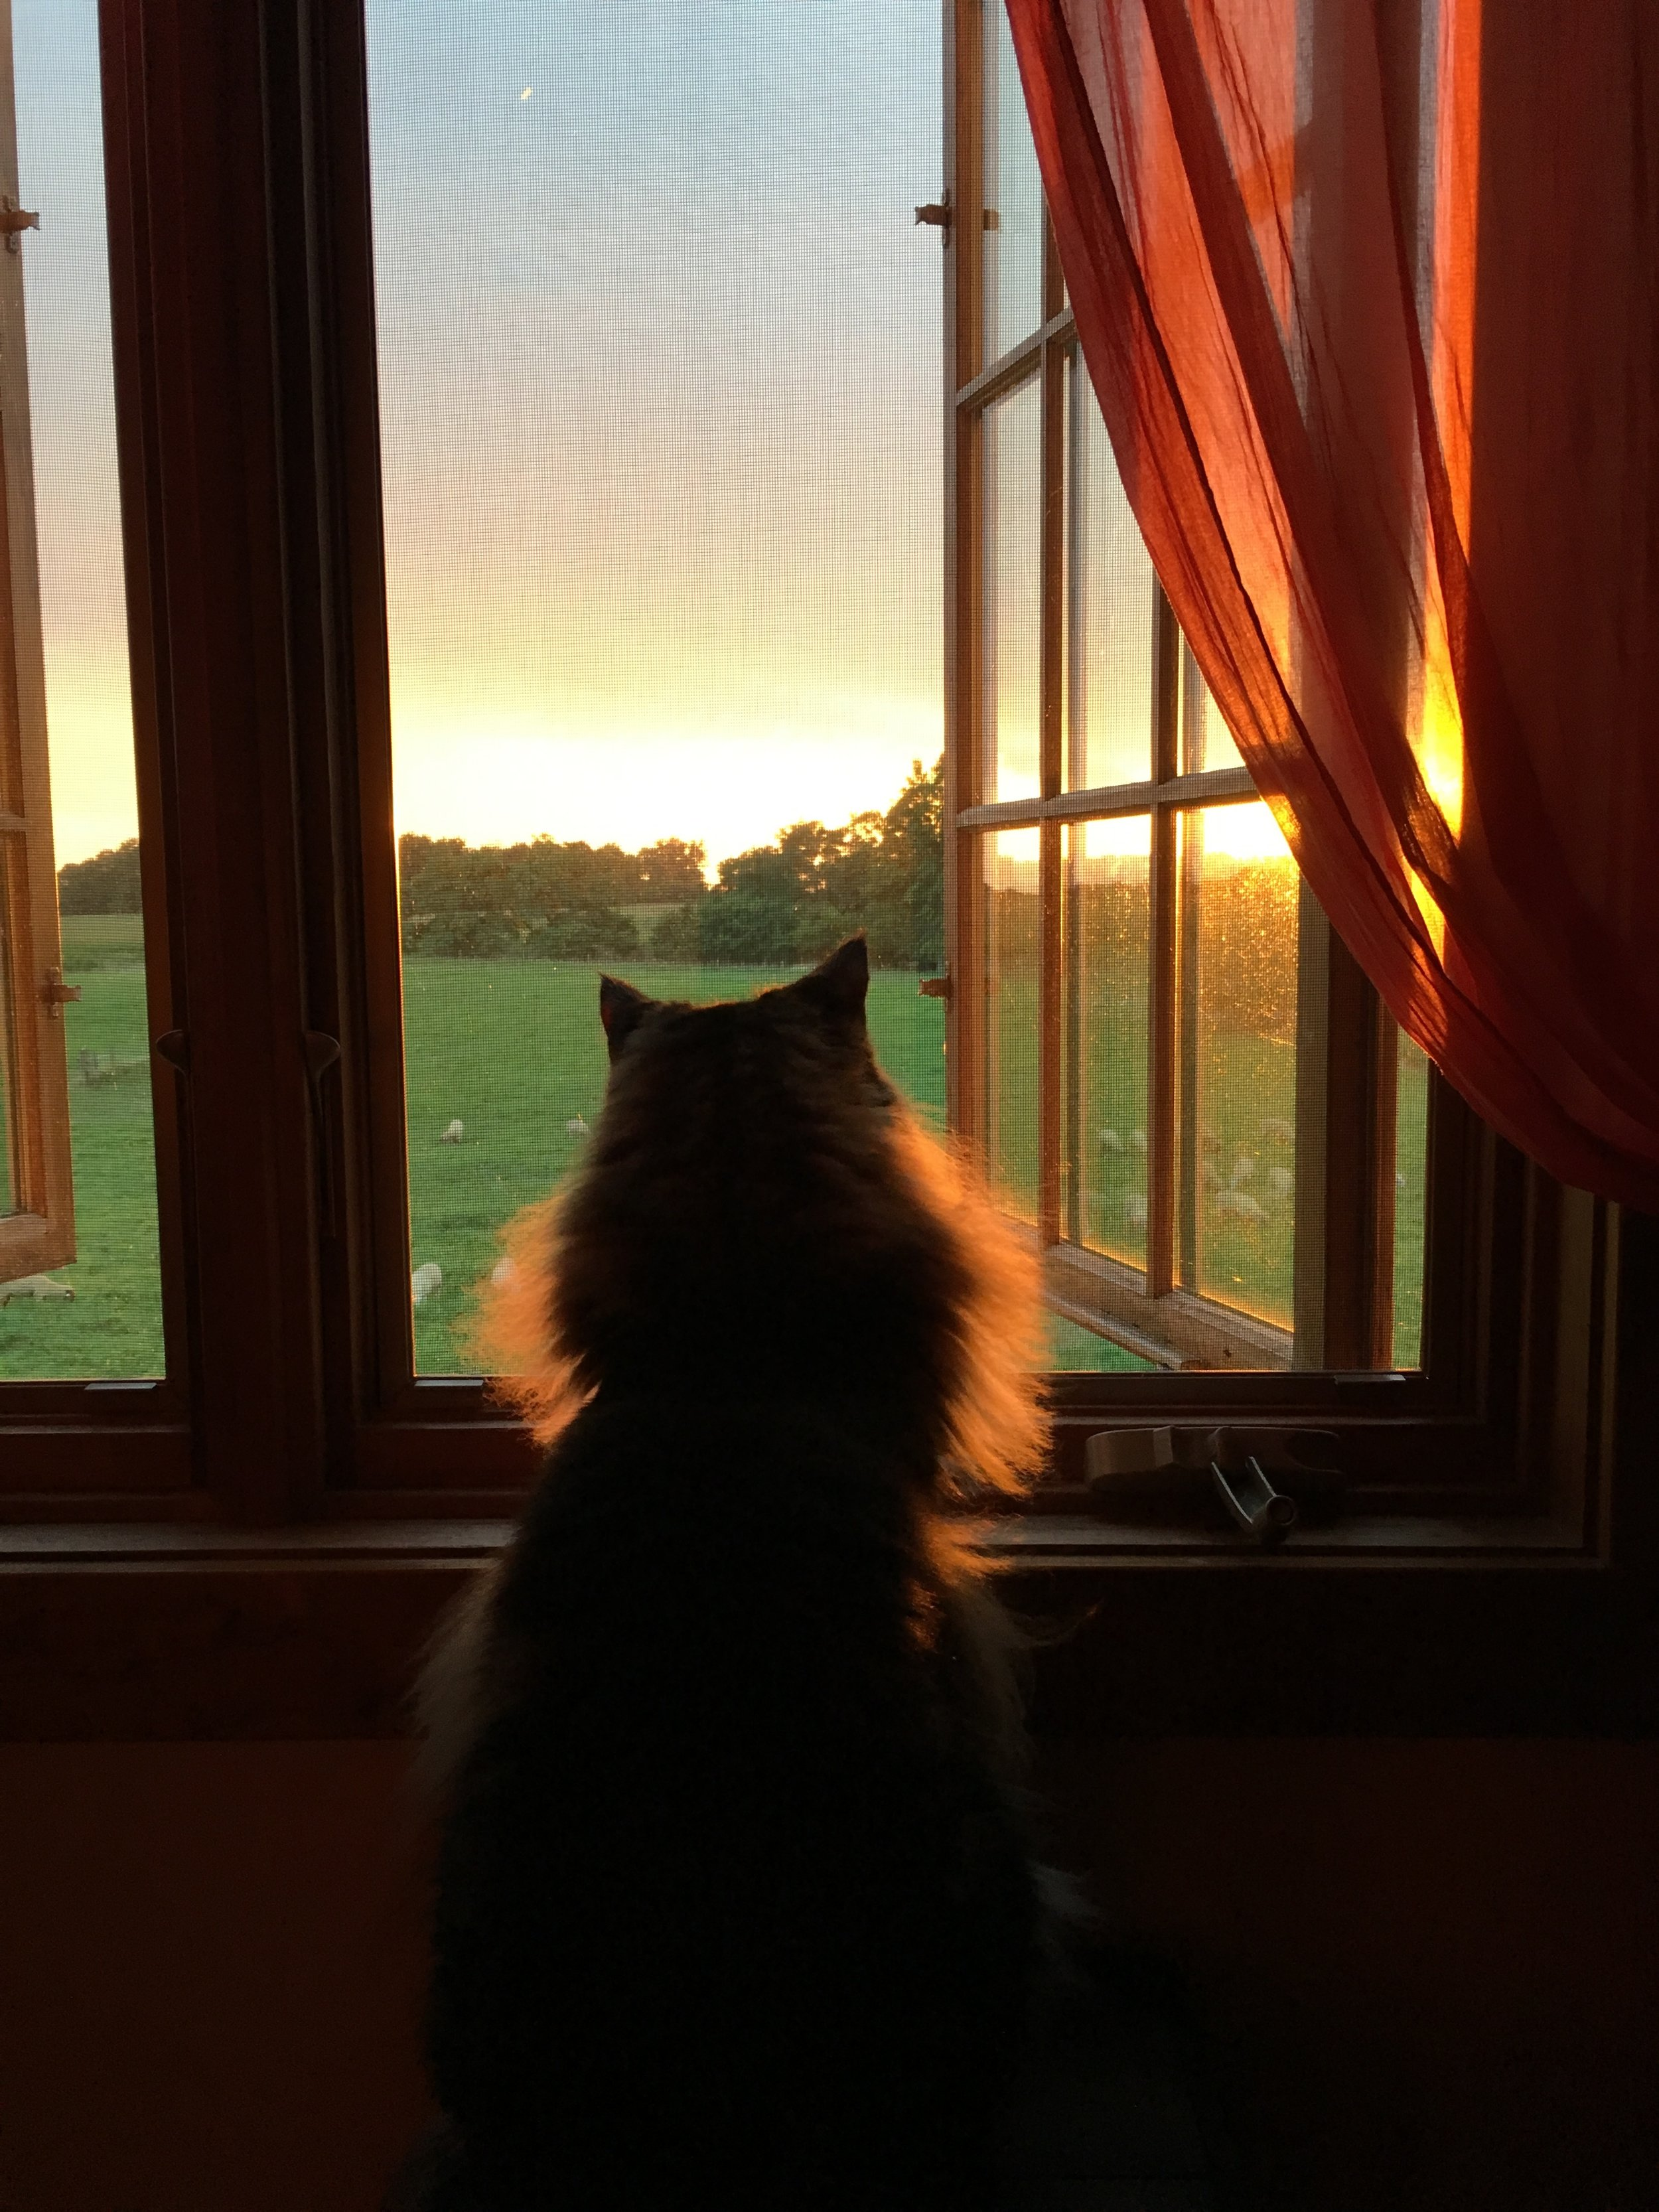 Nugget looking out at the sheep once we arrived to my parents' house in Indiana.